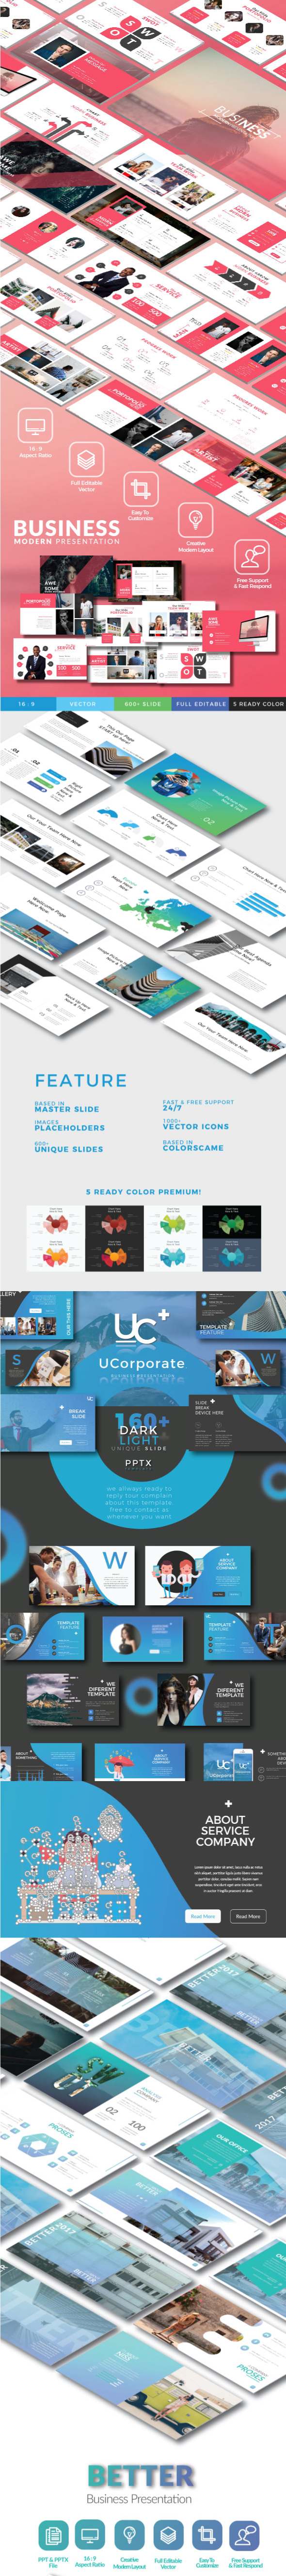 4 in 1 Bundle Powerpoint Template. - Business PowerPoint Templates